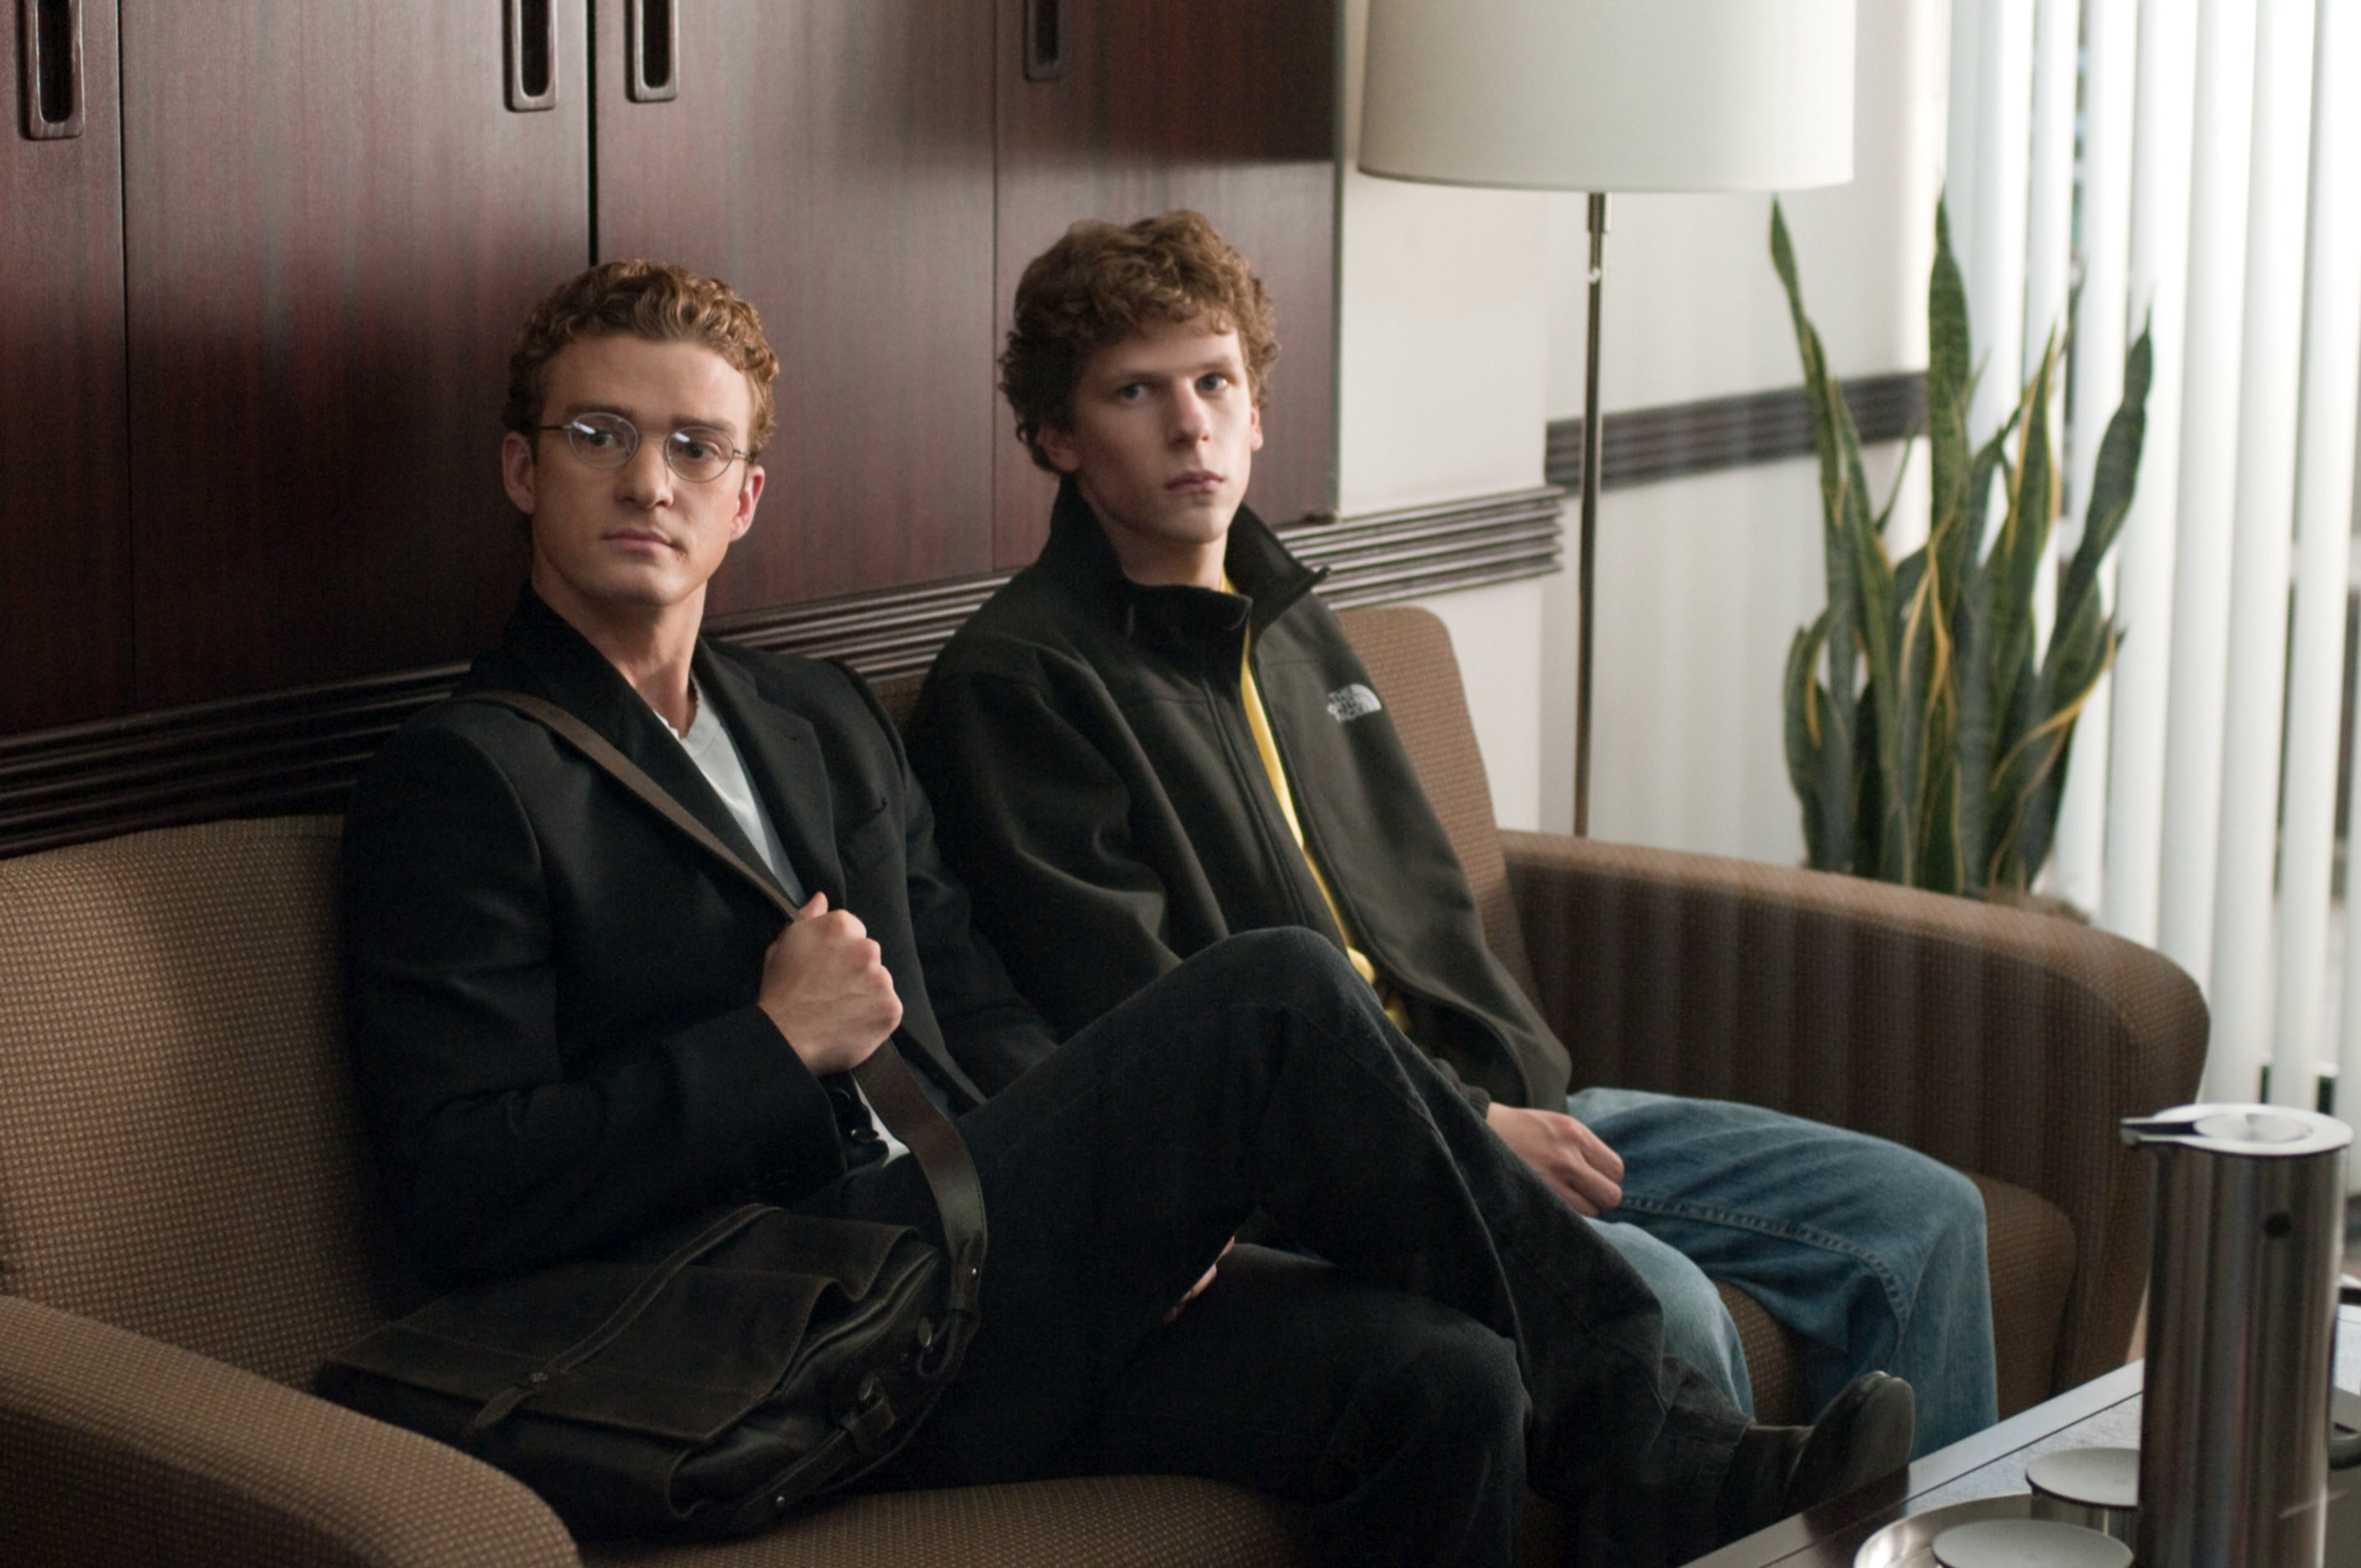 Justin Timberlake and Jesse Eisenberg sit on a couch